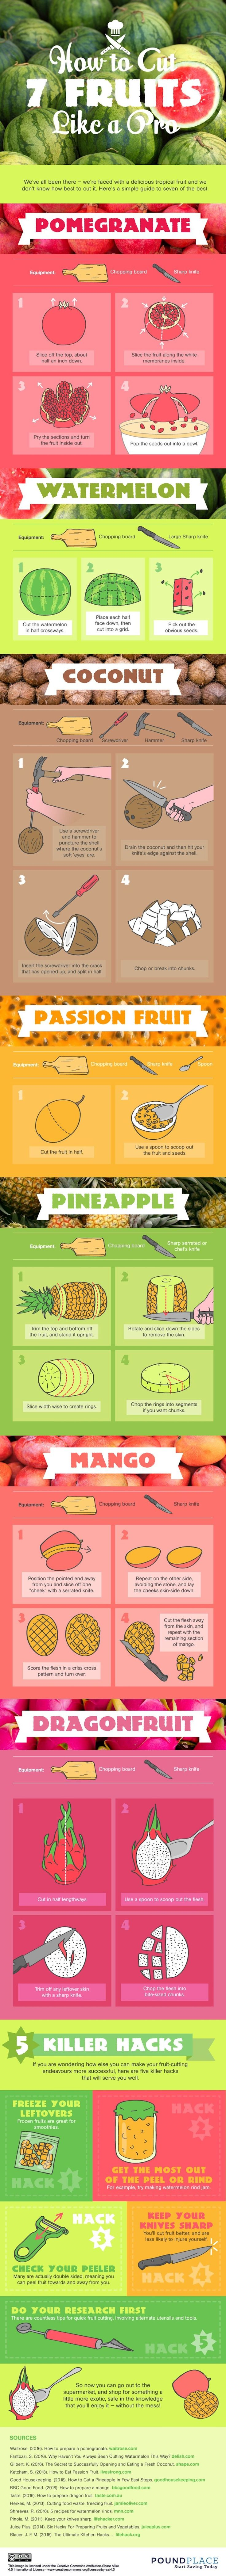 Learn To Cut These Seven Different Fruits Like A Pro